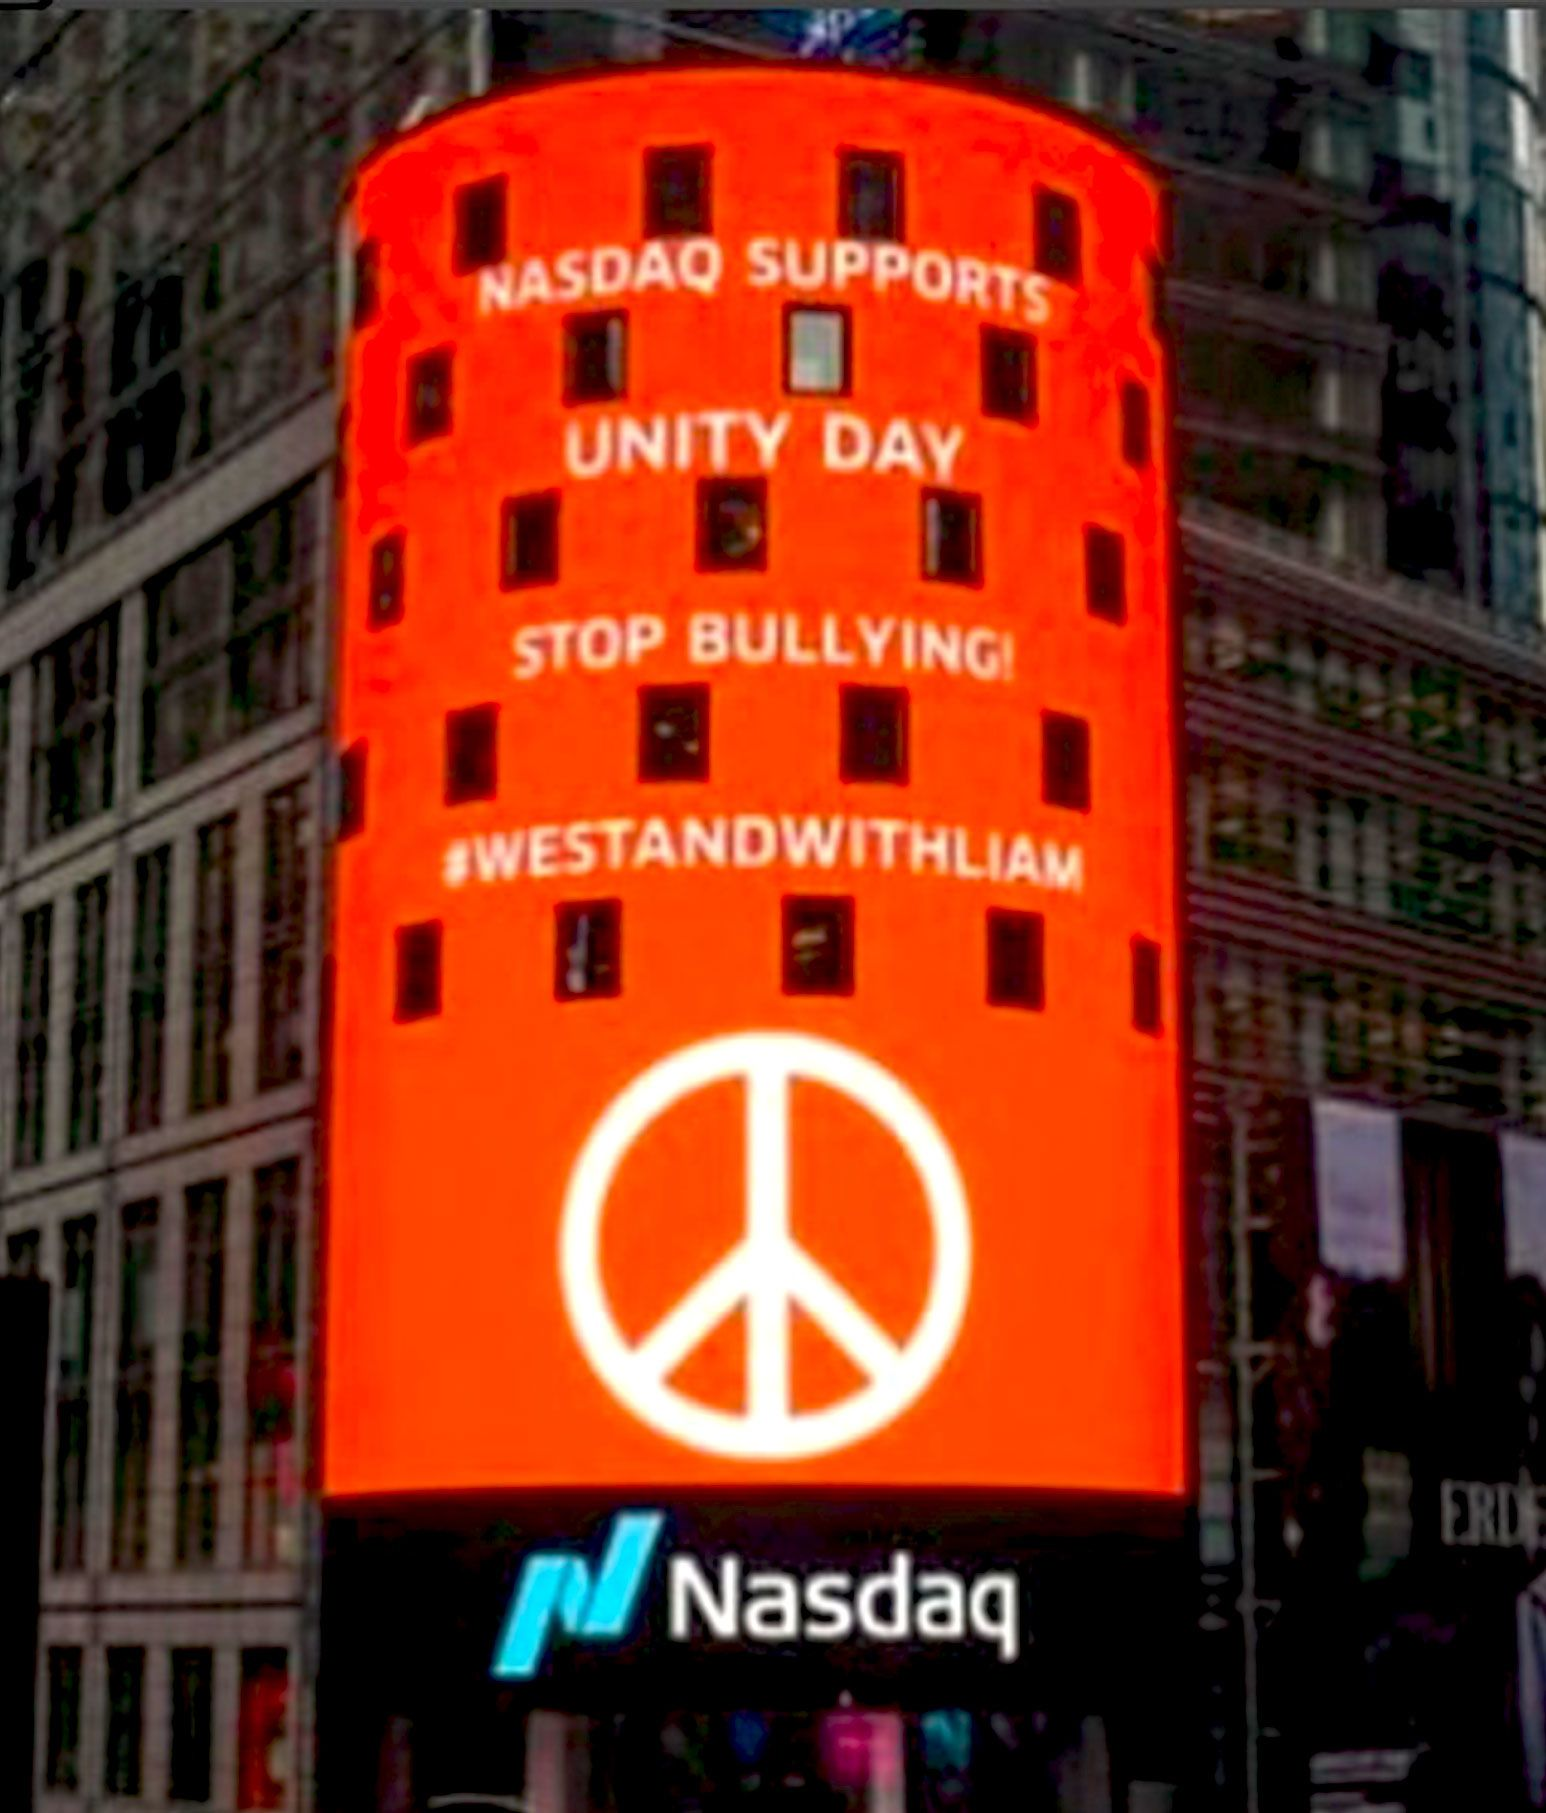 A large vertical led sign with a Nasdaq logo displays a peace symbol with the text #WeStandWithLiam